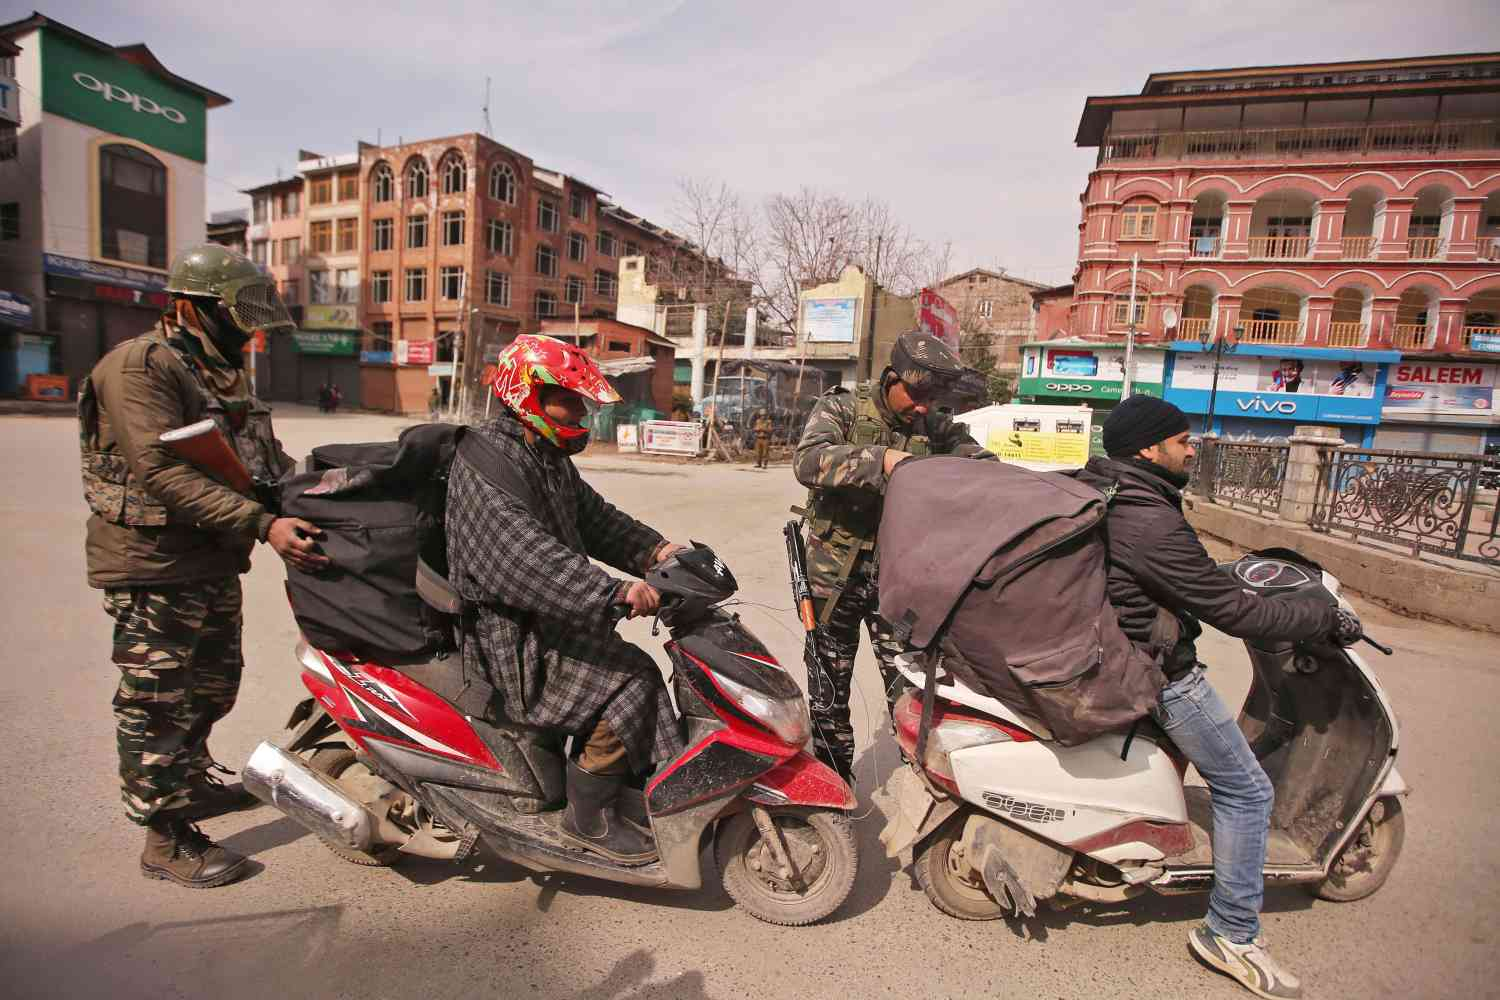 Central Reserve Police Force personnel check the bags of scooterists during restrictions after Kashmiri separatist called for shutdown to protest the arrest of their leaders in Srinagar on February 24, 2019. (Photo credit: Danish Ismail/Reuters).